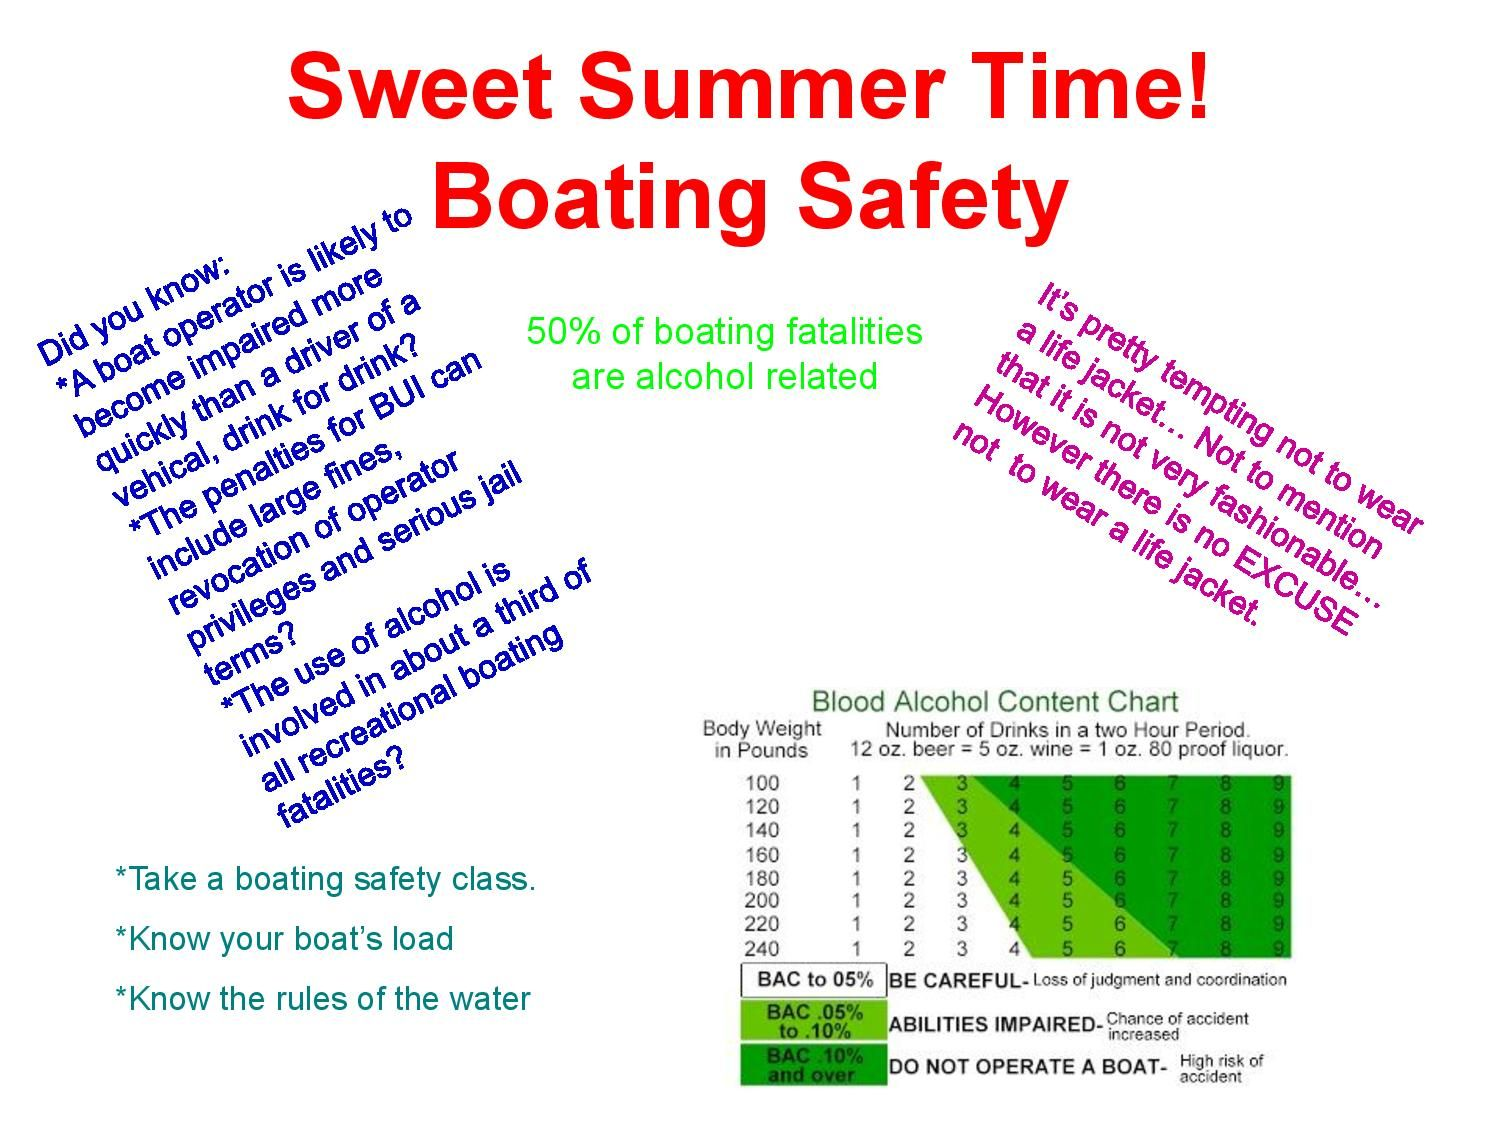 Boating safety from christian hospital in st louis missouri ahg boating safety from christian hospital in st louis missouri nvjuhfo Choice Image